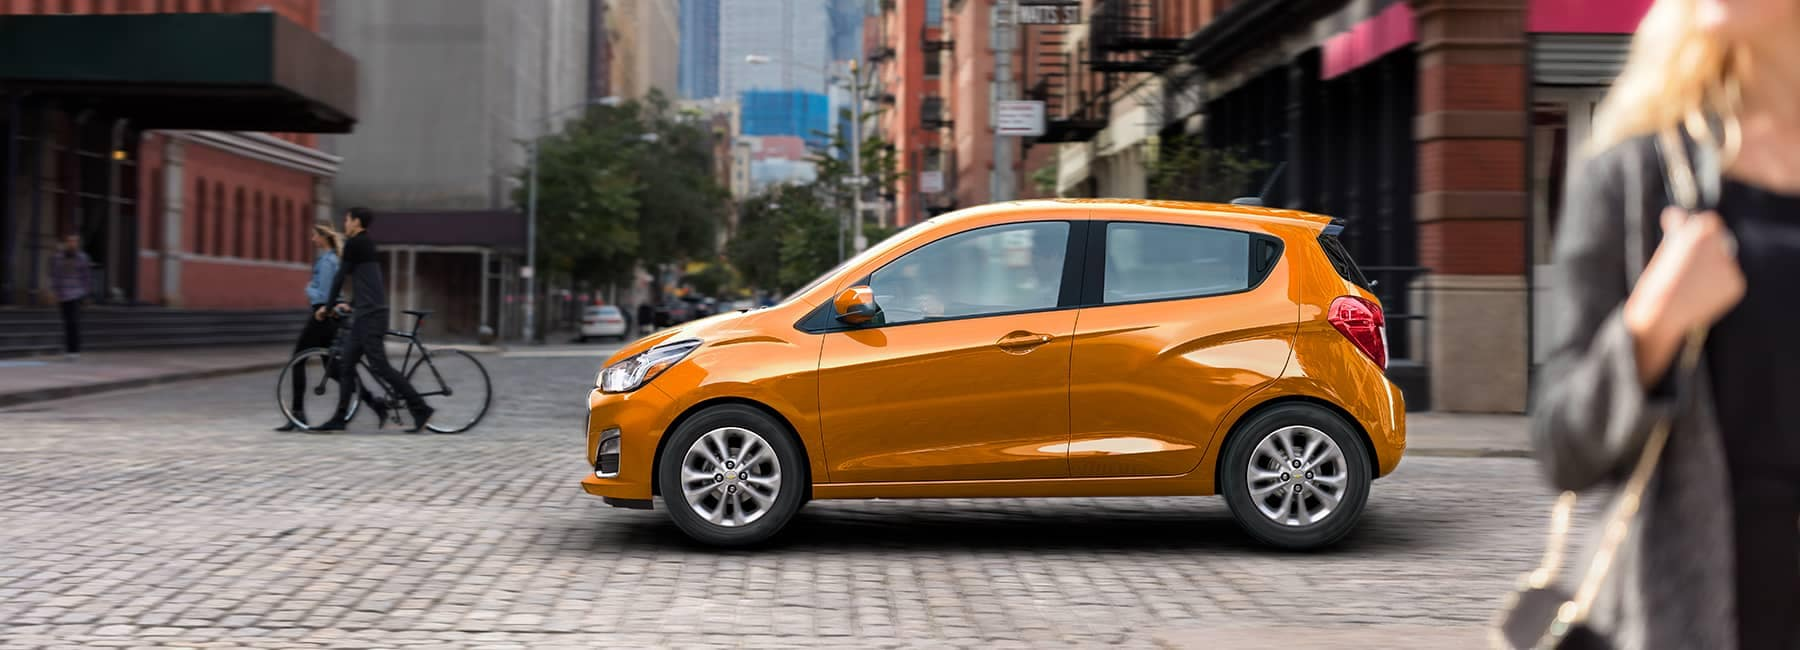 Orange 2020 Chevrolet Spark on a City Street_mobile